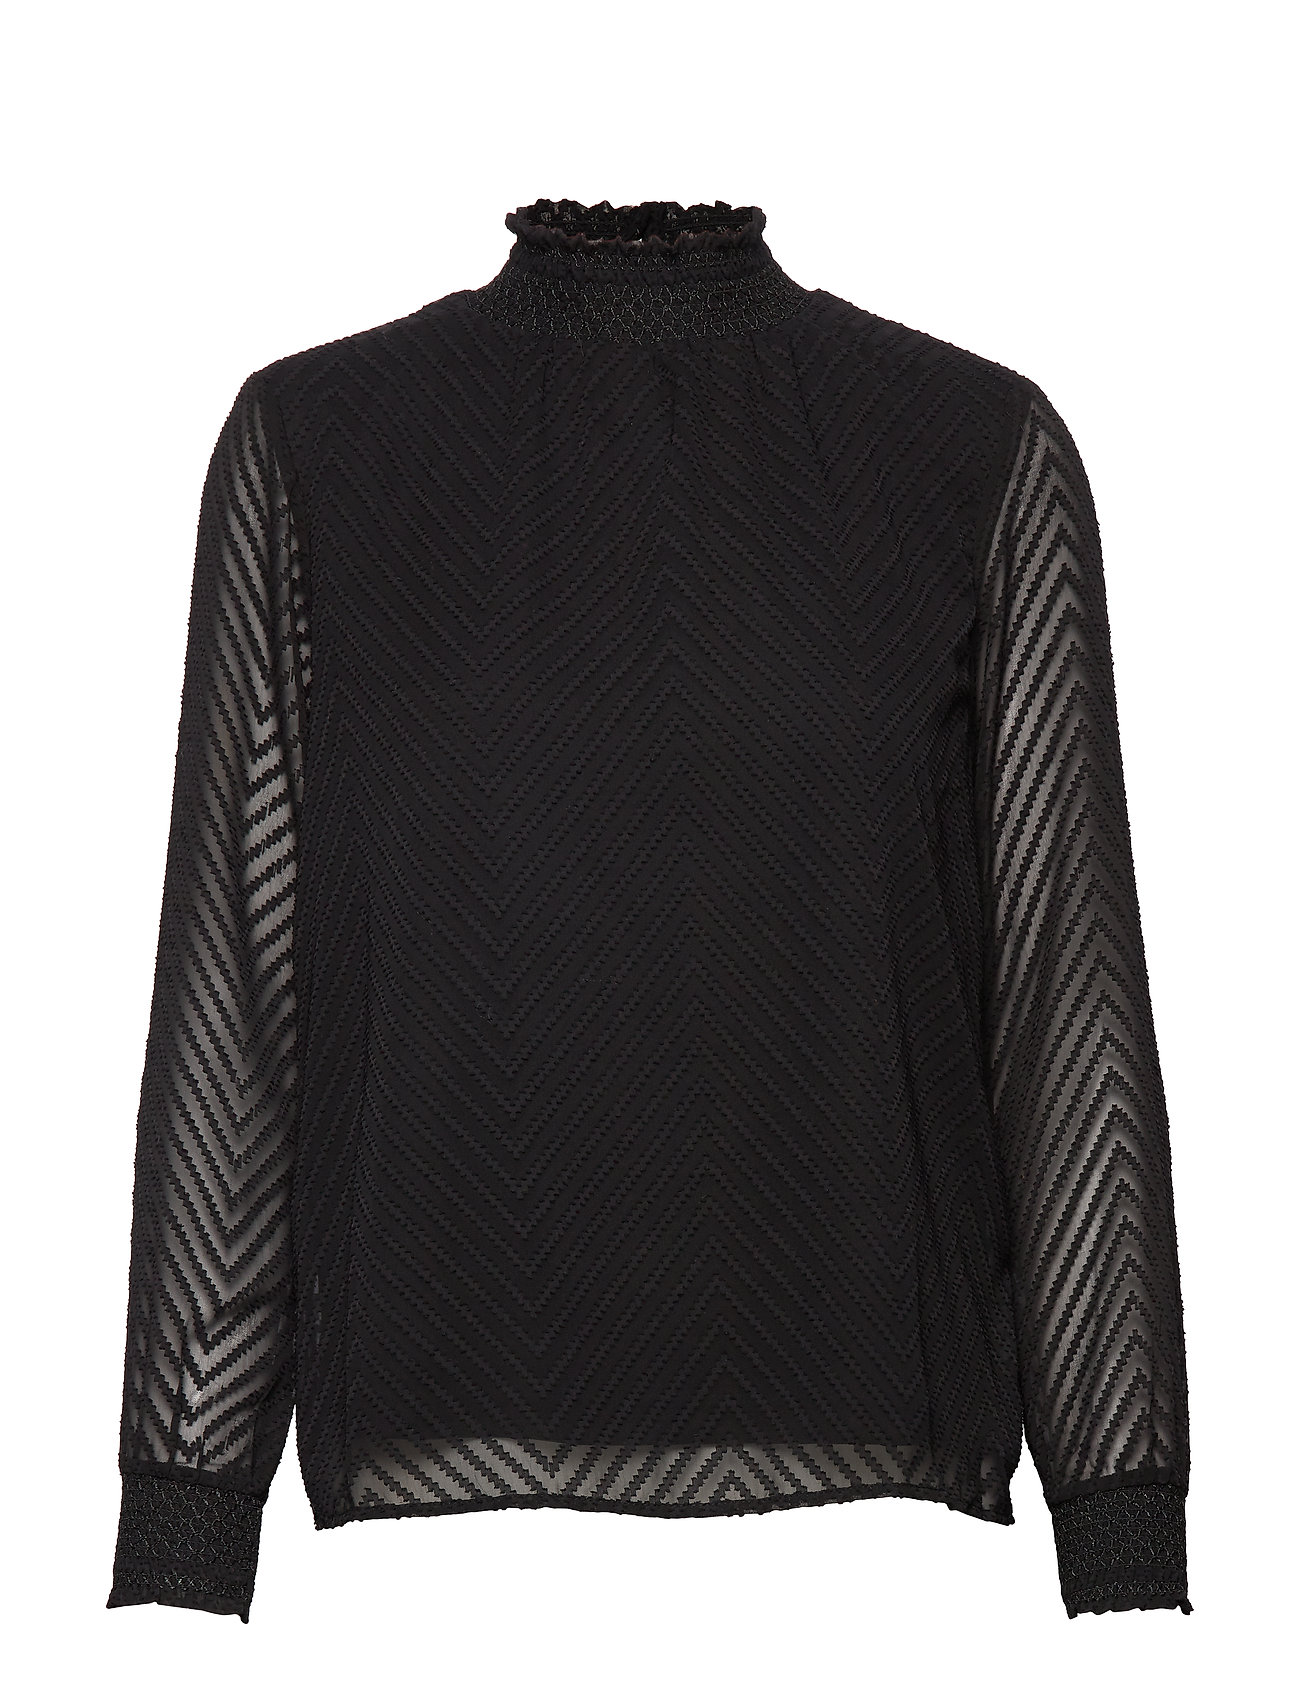 ONLY ONLNEW KAYLA L/S TOP NOOS WVN - BLACK